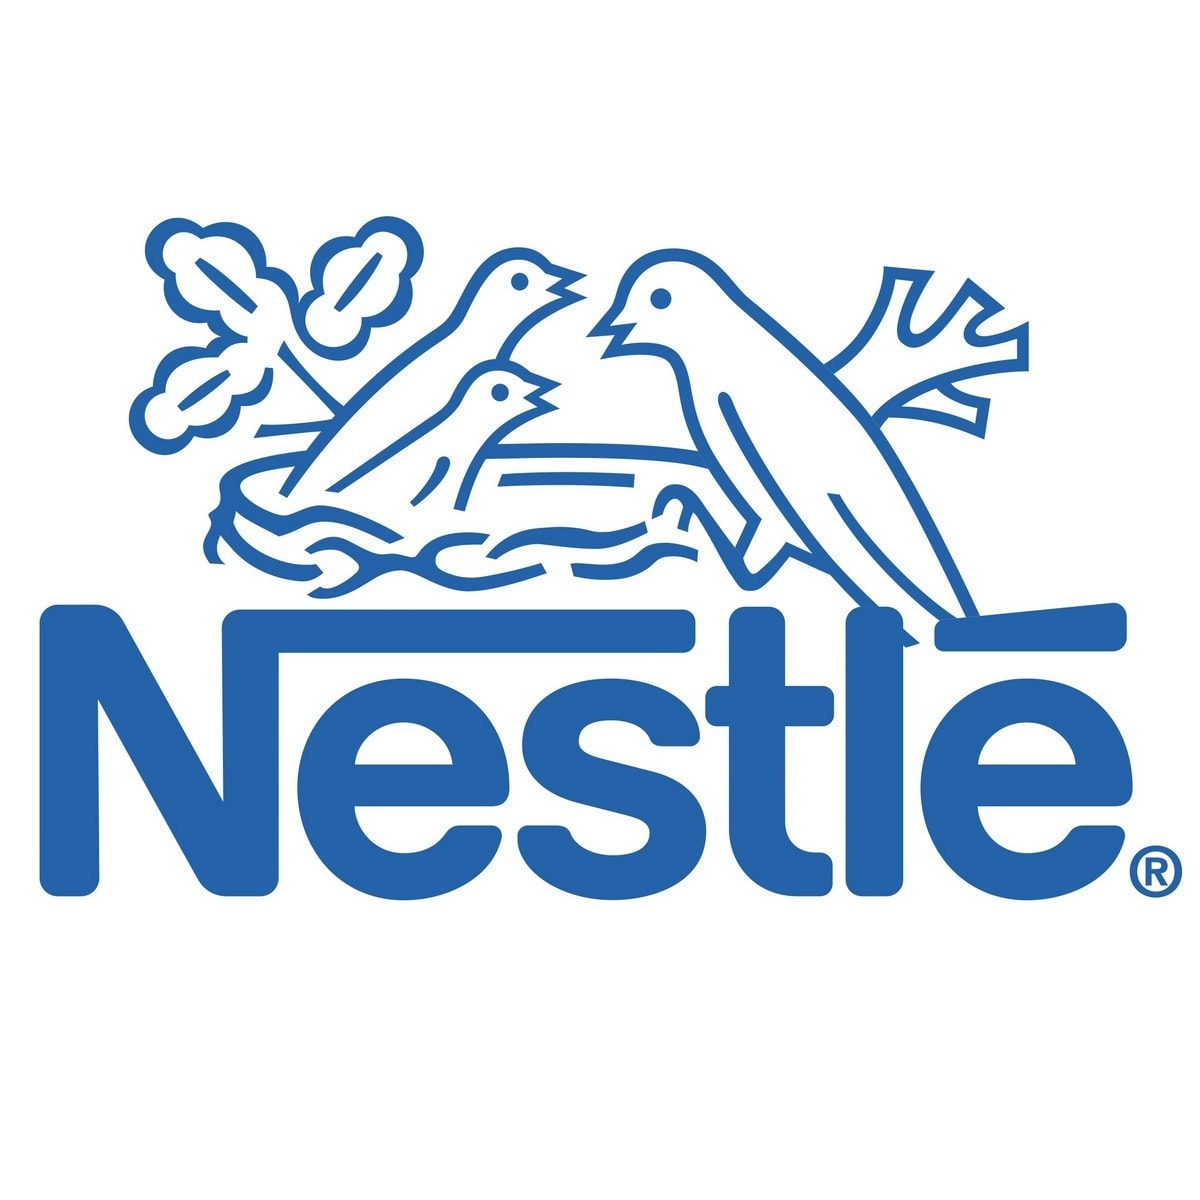 Marketing mix of Nestle – Nestle marketing mix